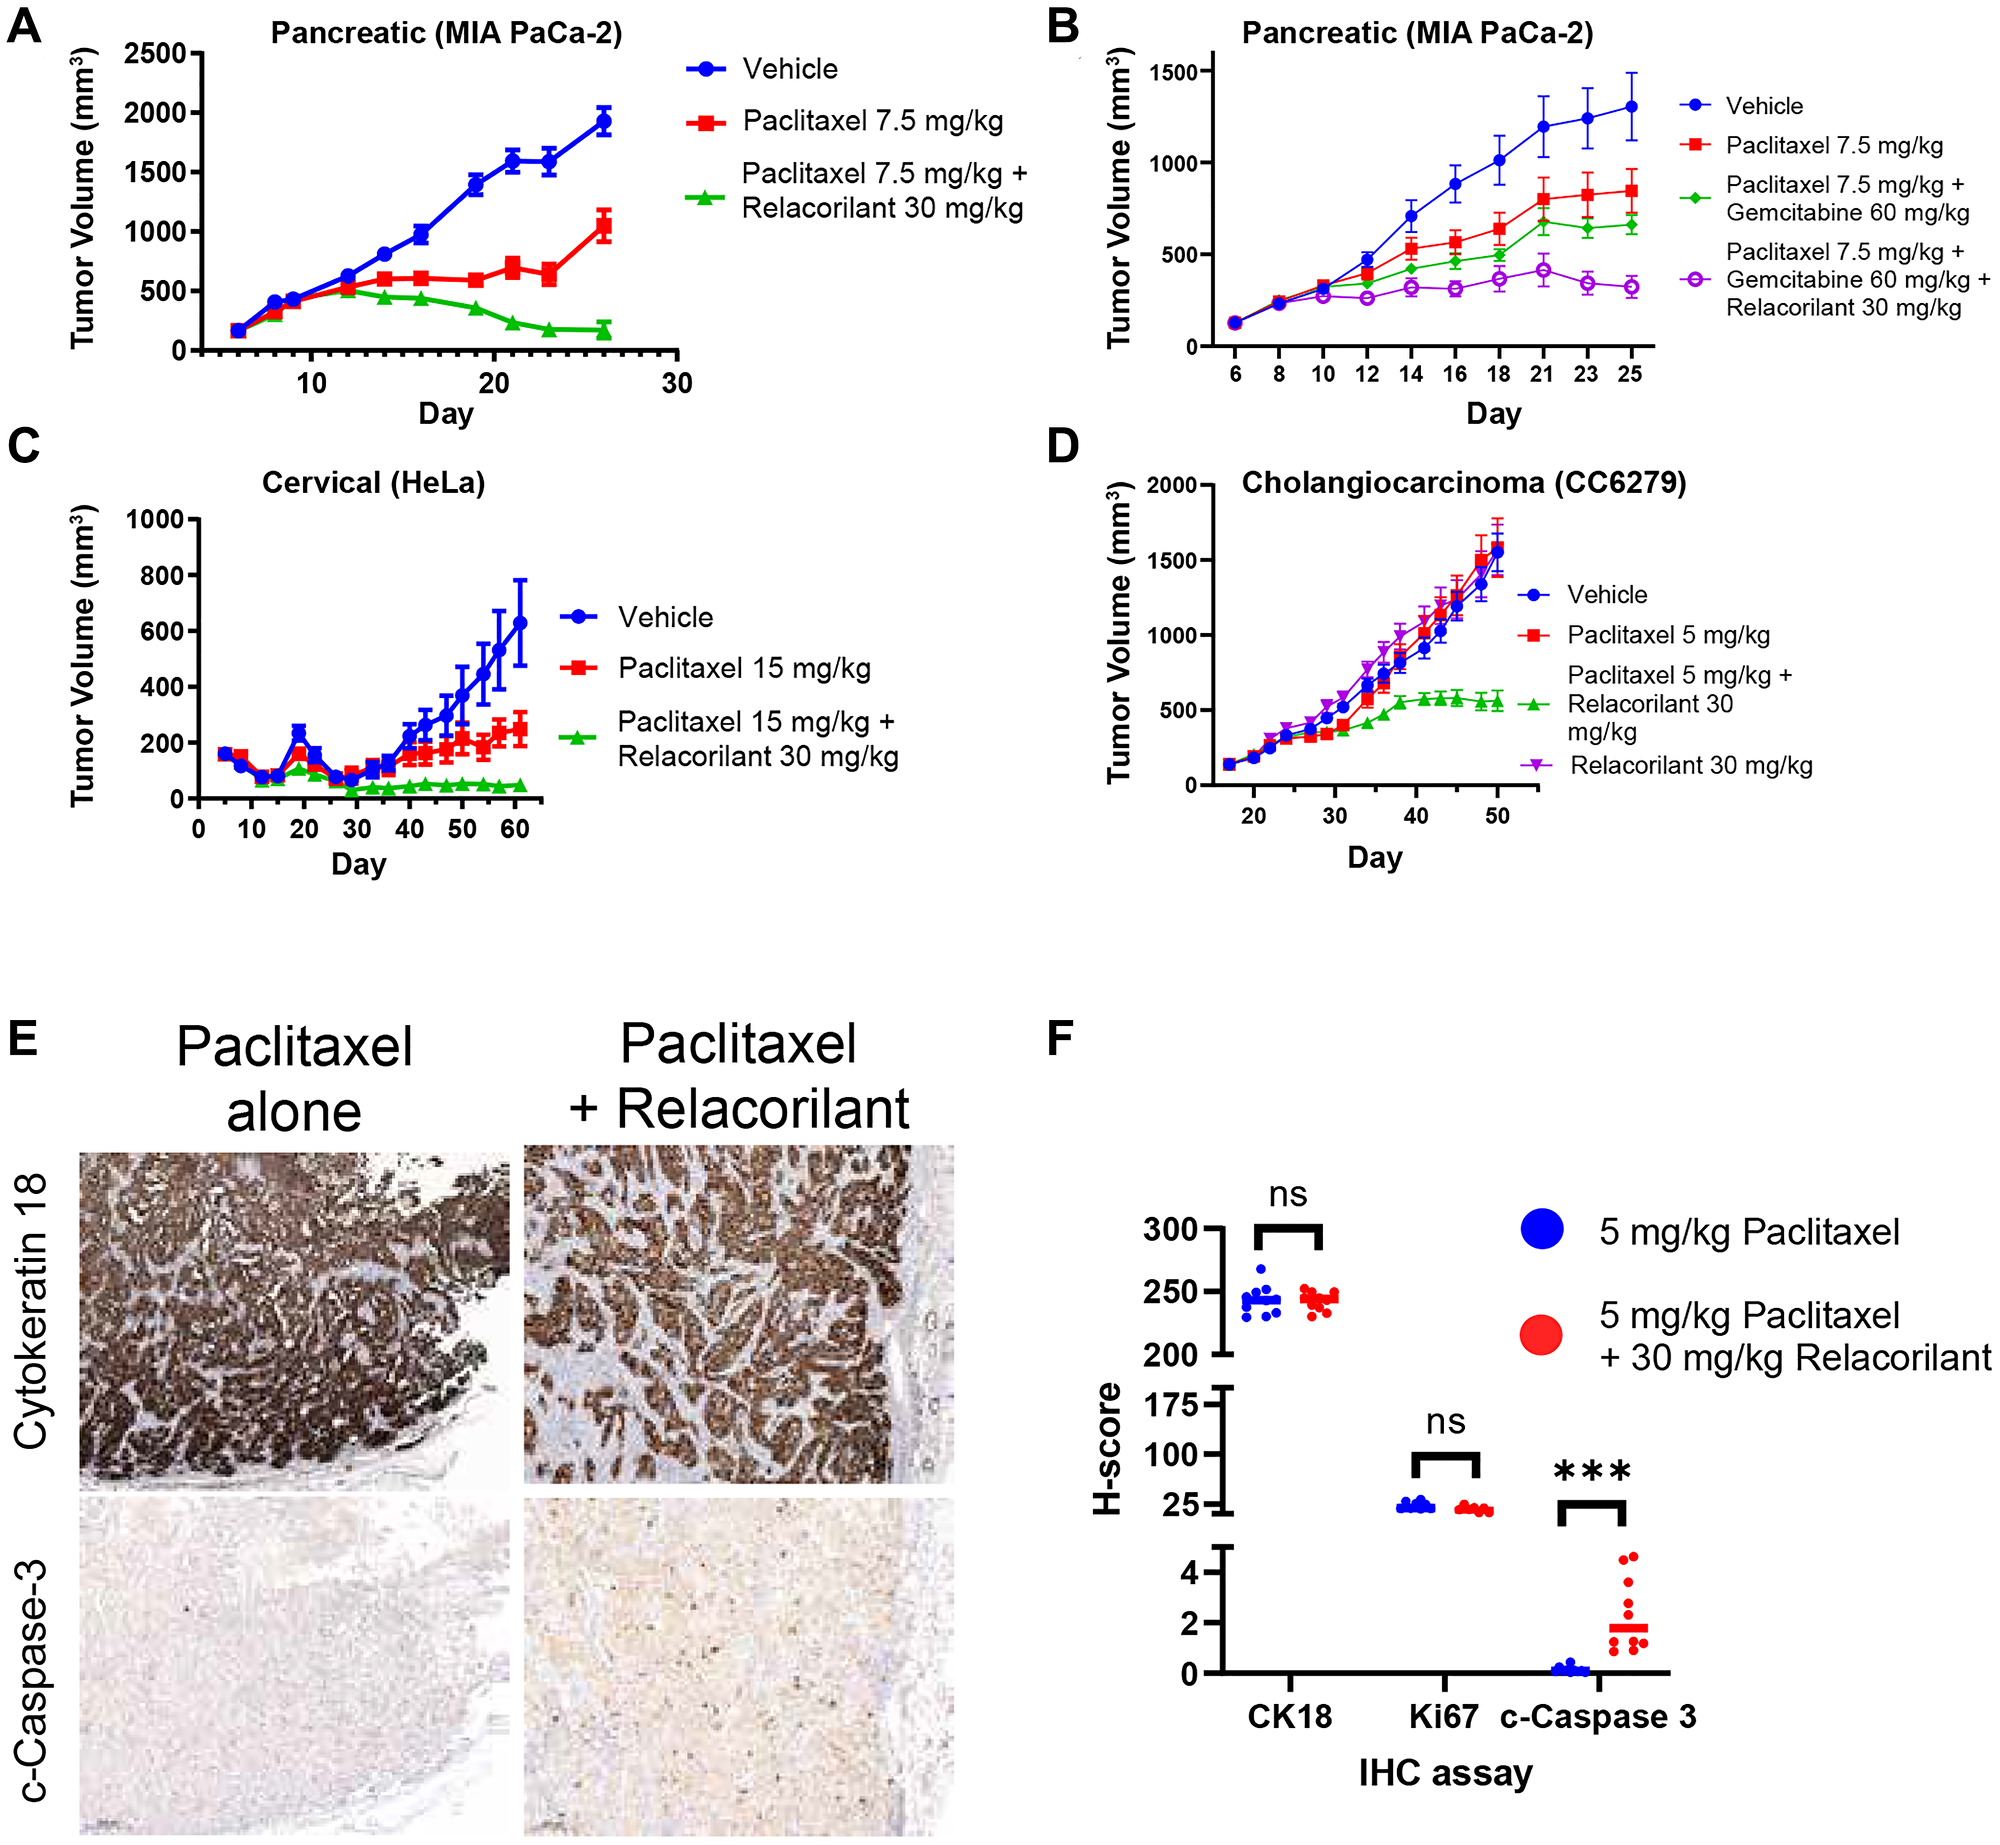 Relacorilant improves the efficacy and promotes apoptotic activity of cytotoxic therapy in xenograft models under physiological cortisol conditions.